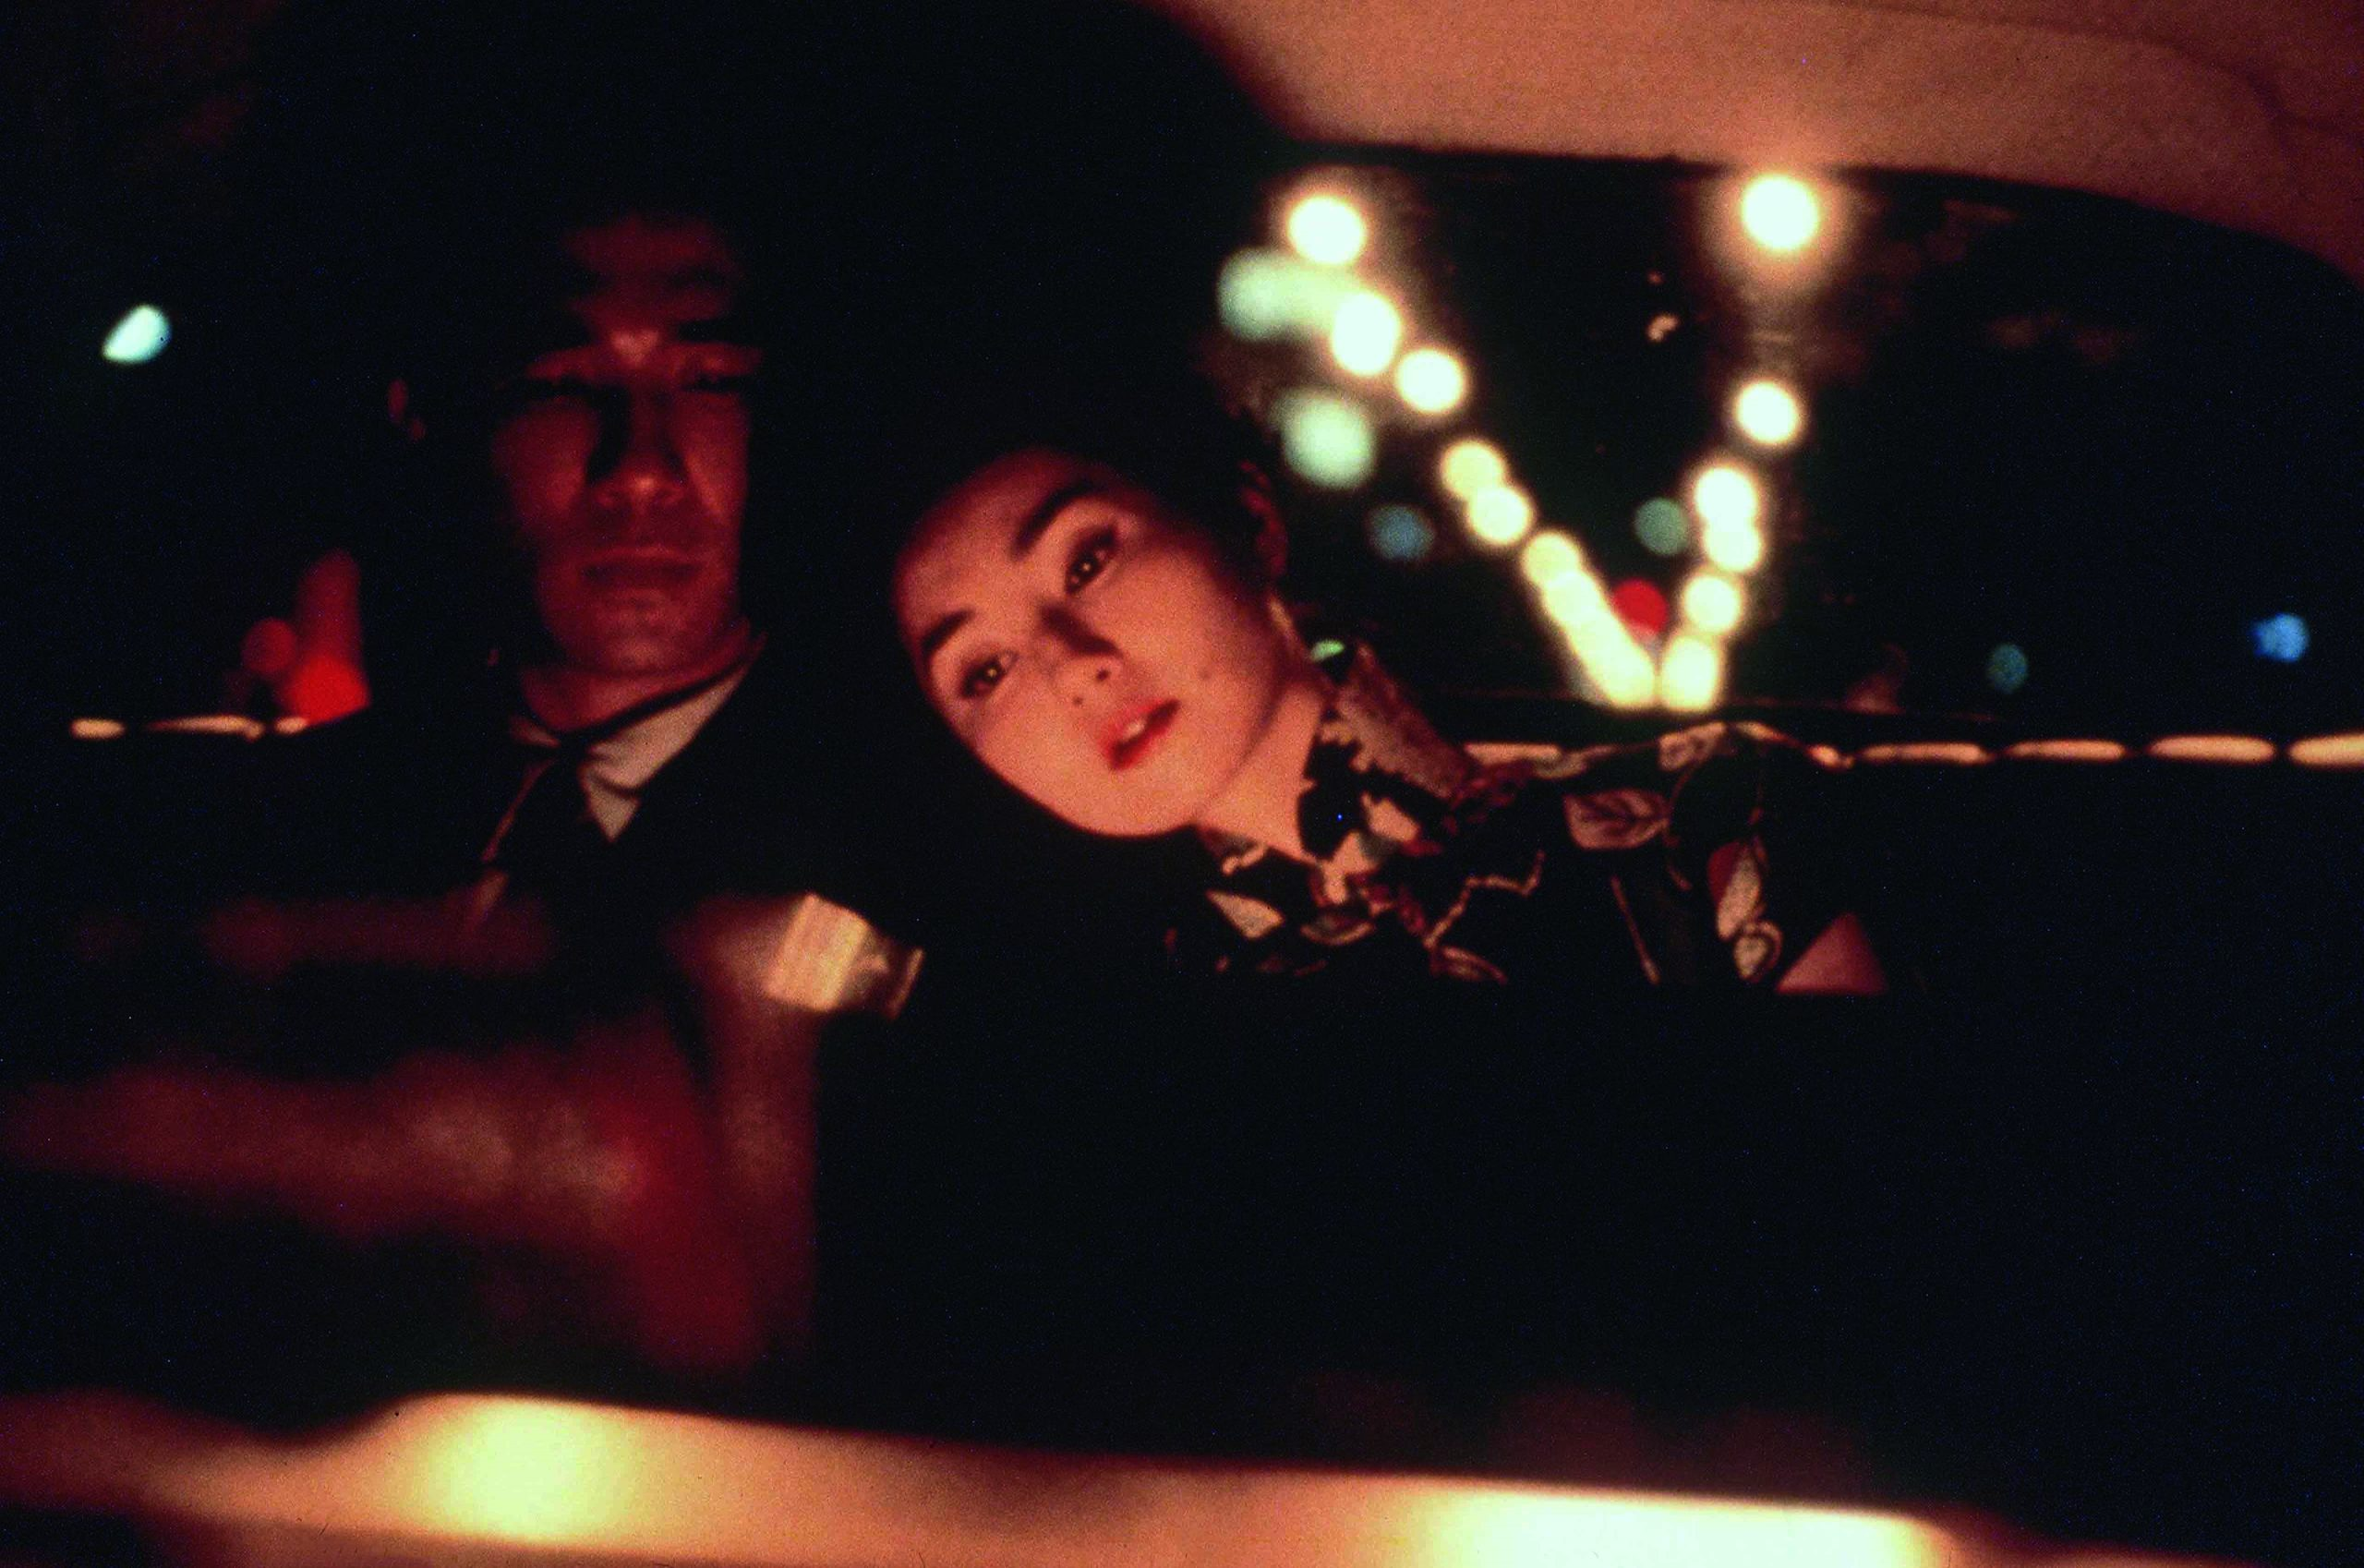 """Extract of the film """"In the mood for love"""""""